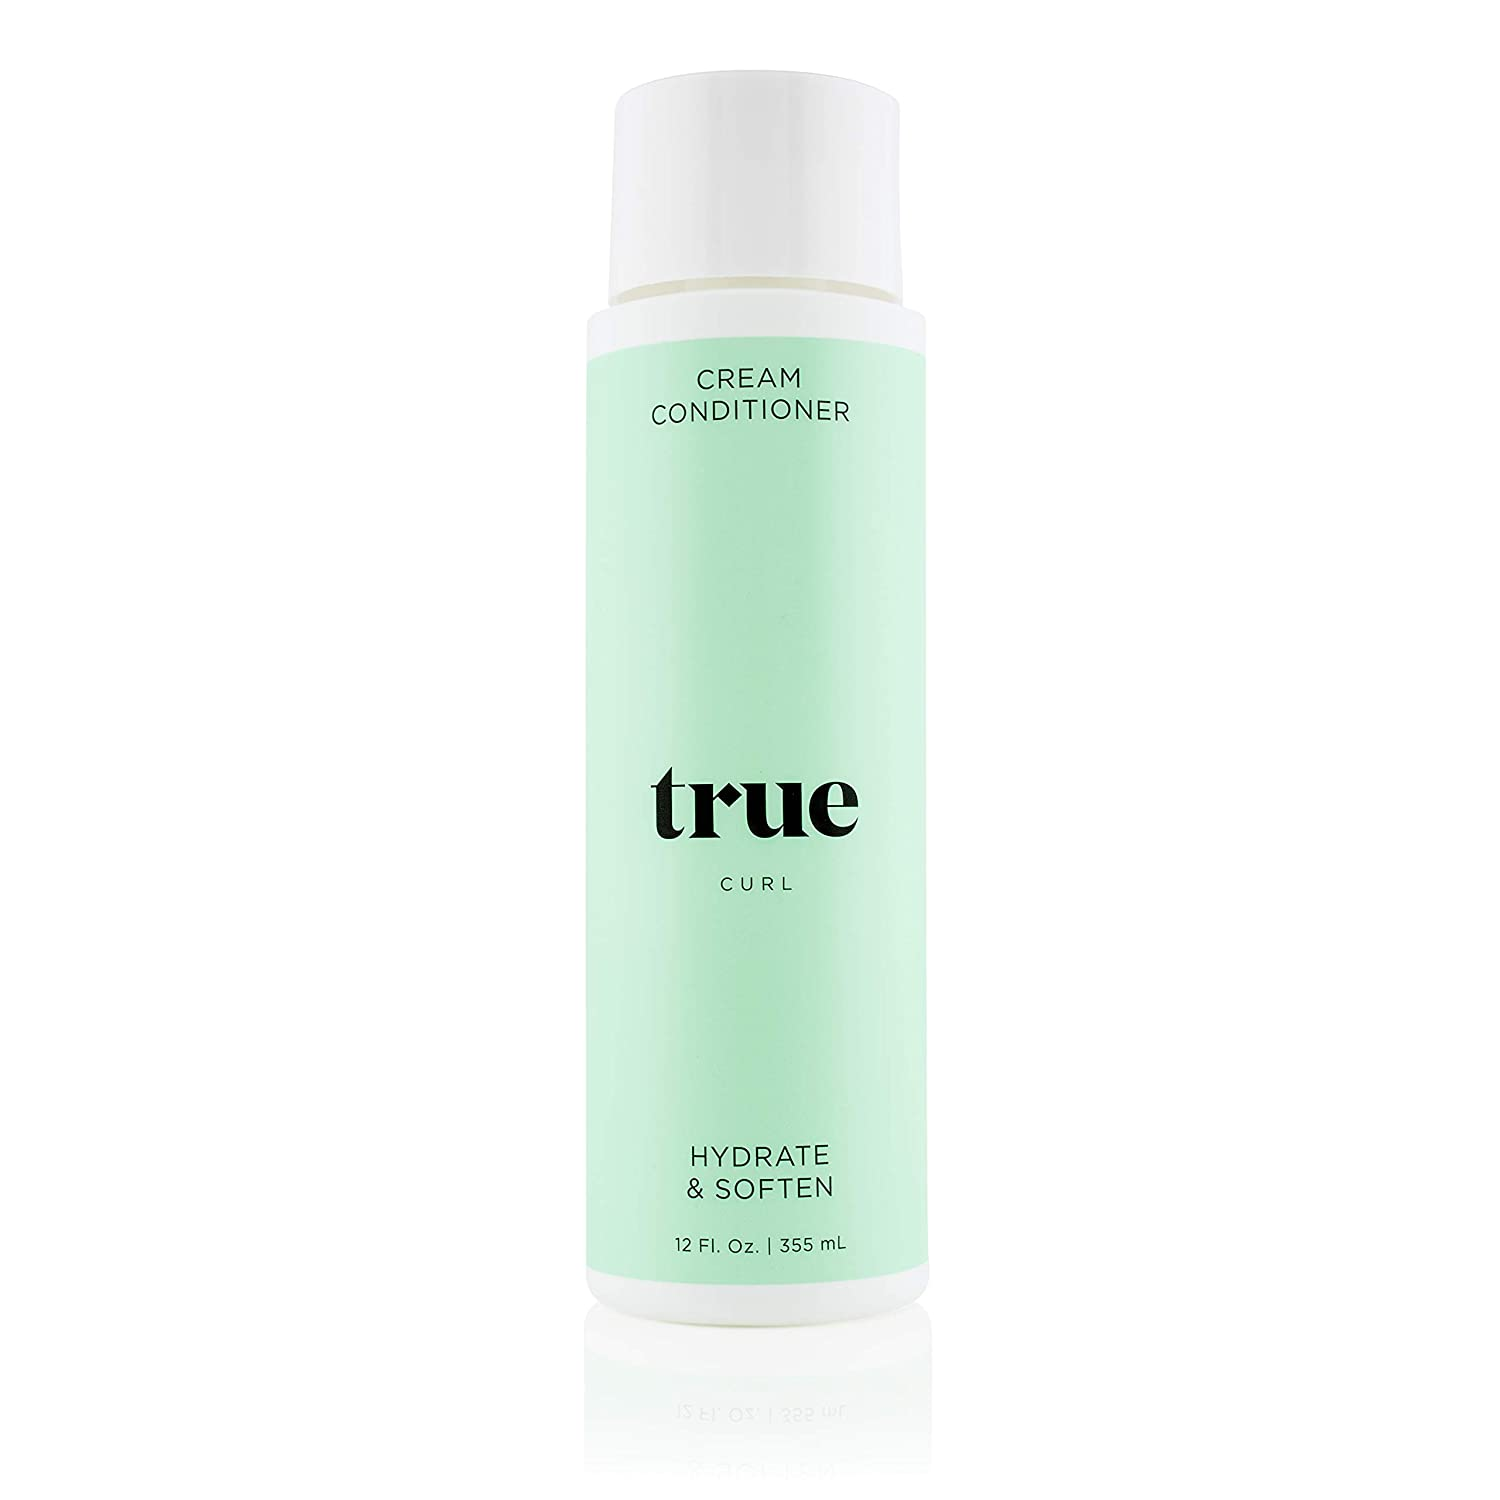 True Curl Cream Conditioner. Vegan, Cruelty Free, Hydrate and Soften for Frizz-Free Wavy, Curly Hair. Silicone, Sulfate and Paraben-Free, 12 Fl Oz.